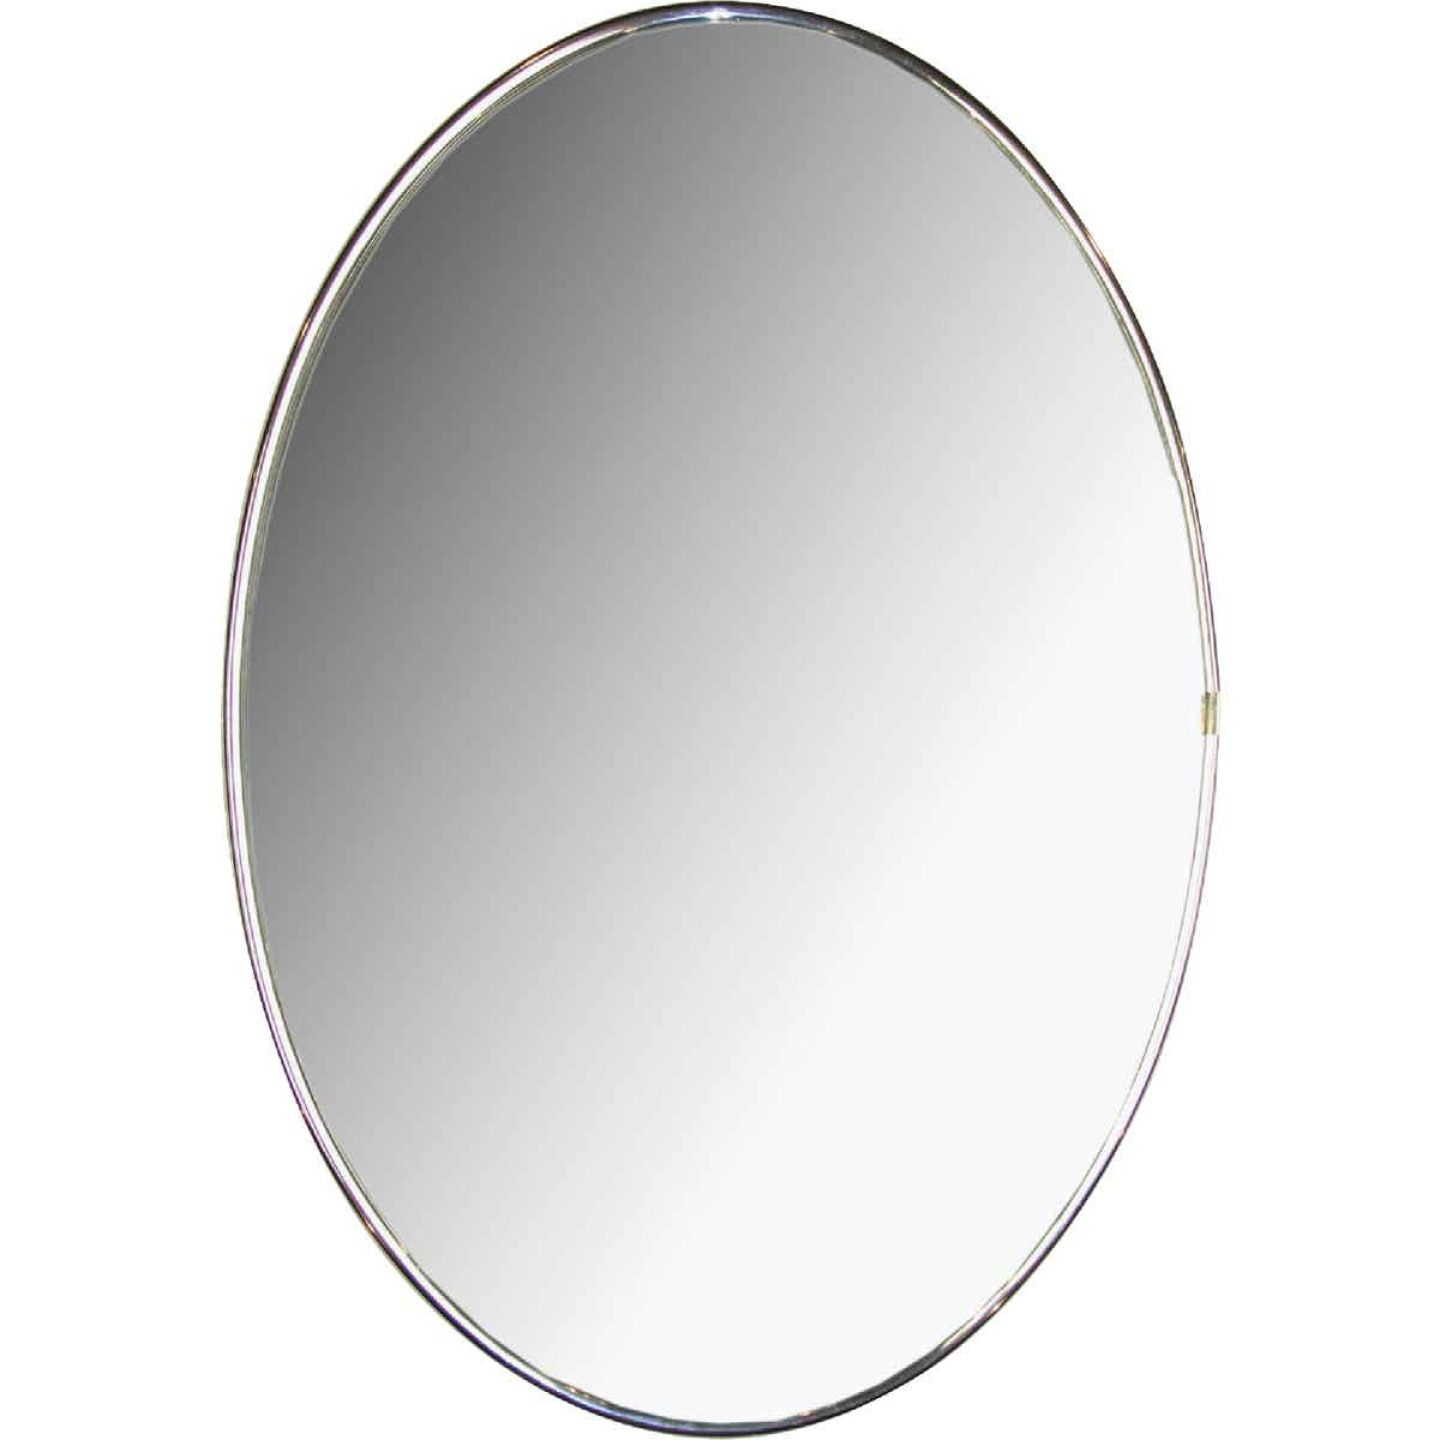 Erias Home Designs Elmvale 15 In. W. x 22 In. H. Chrome Mylar Flat Edge Oval Wall Mirror Image 1